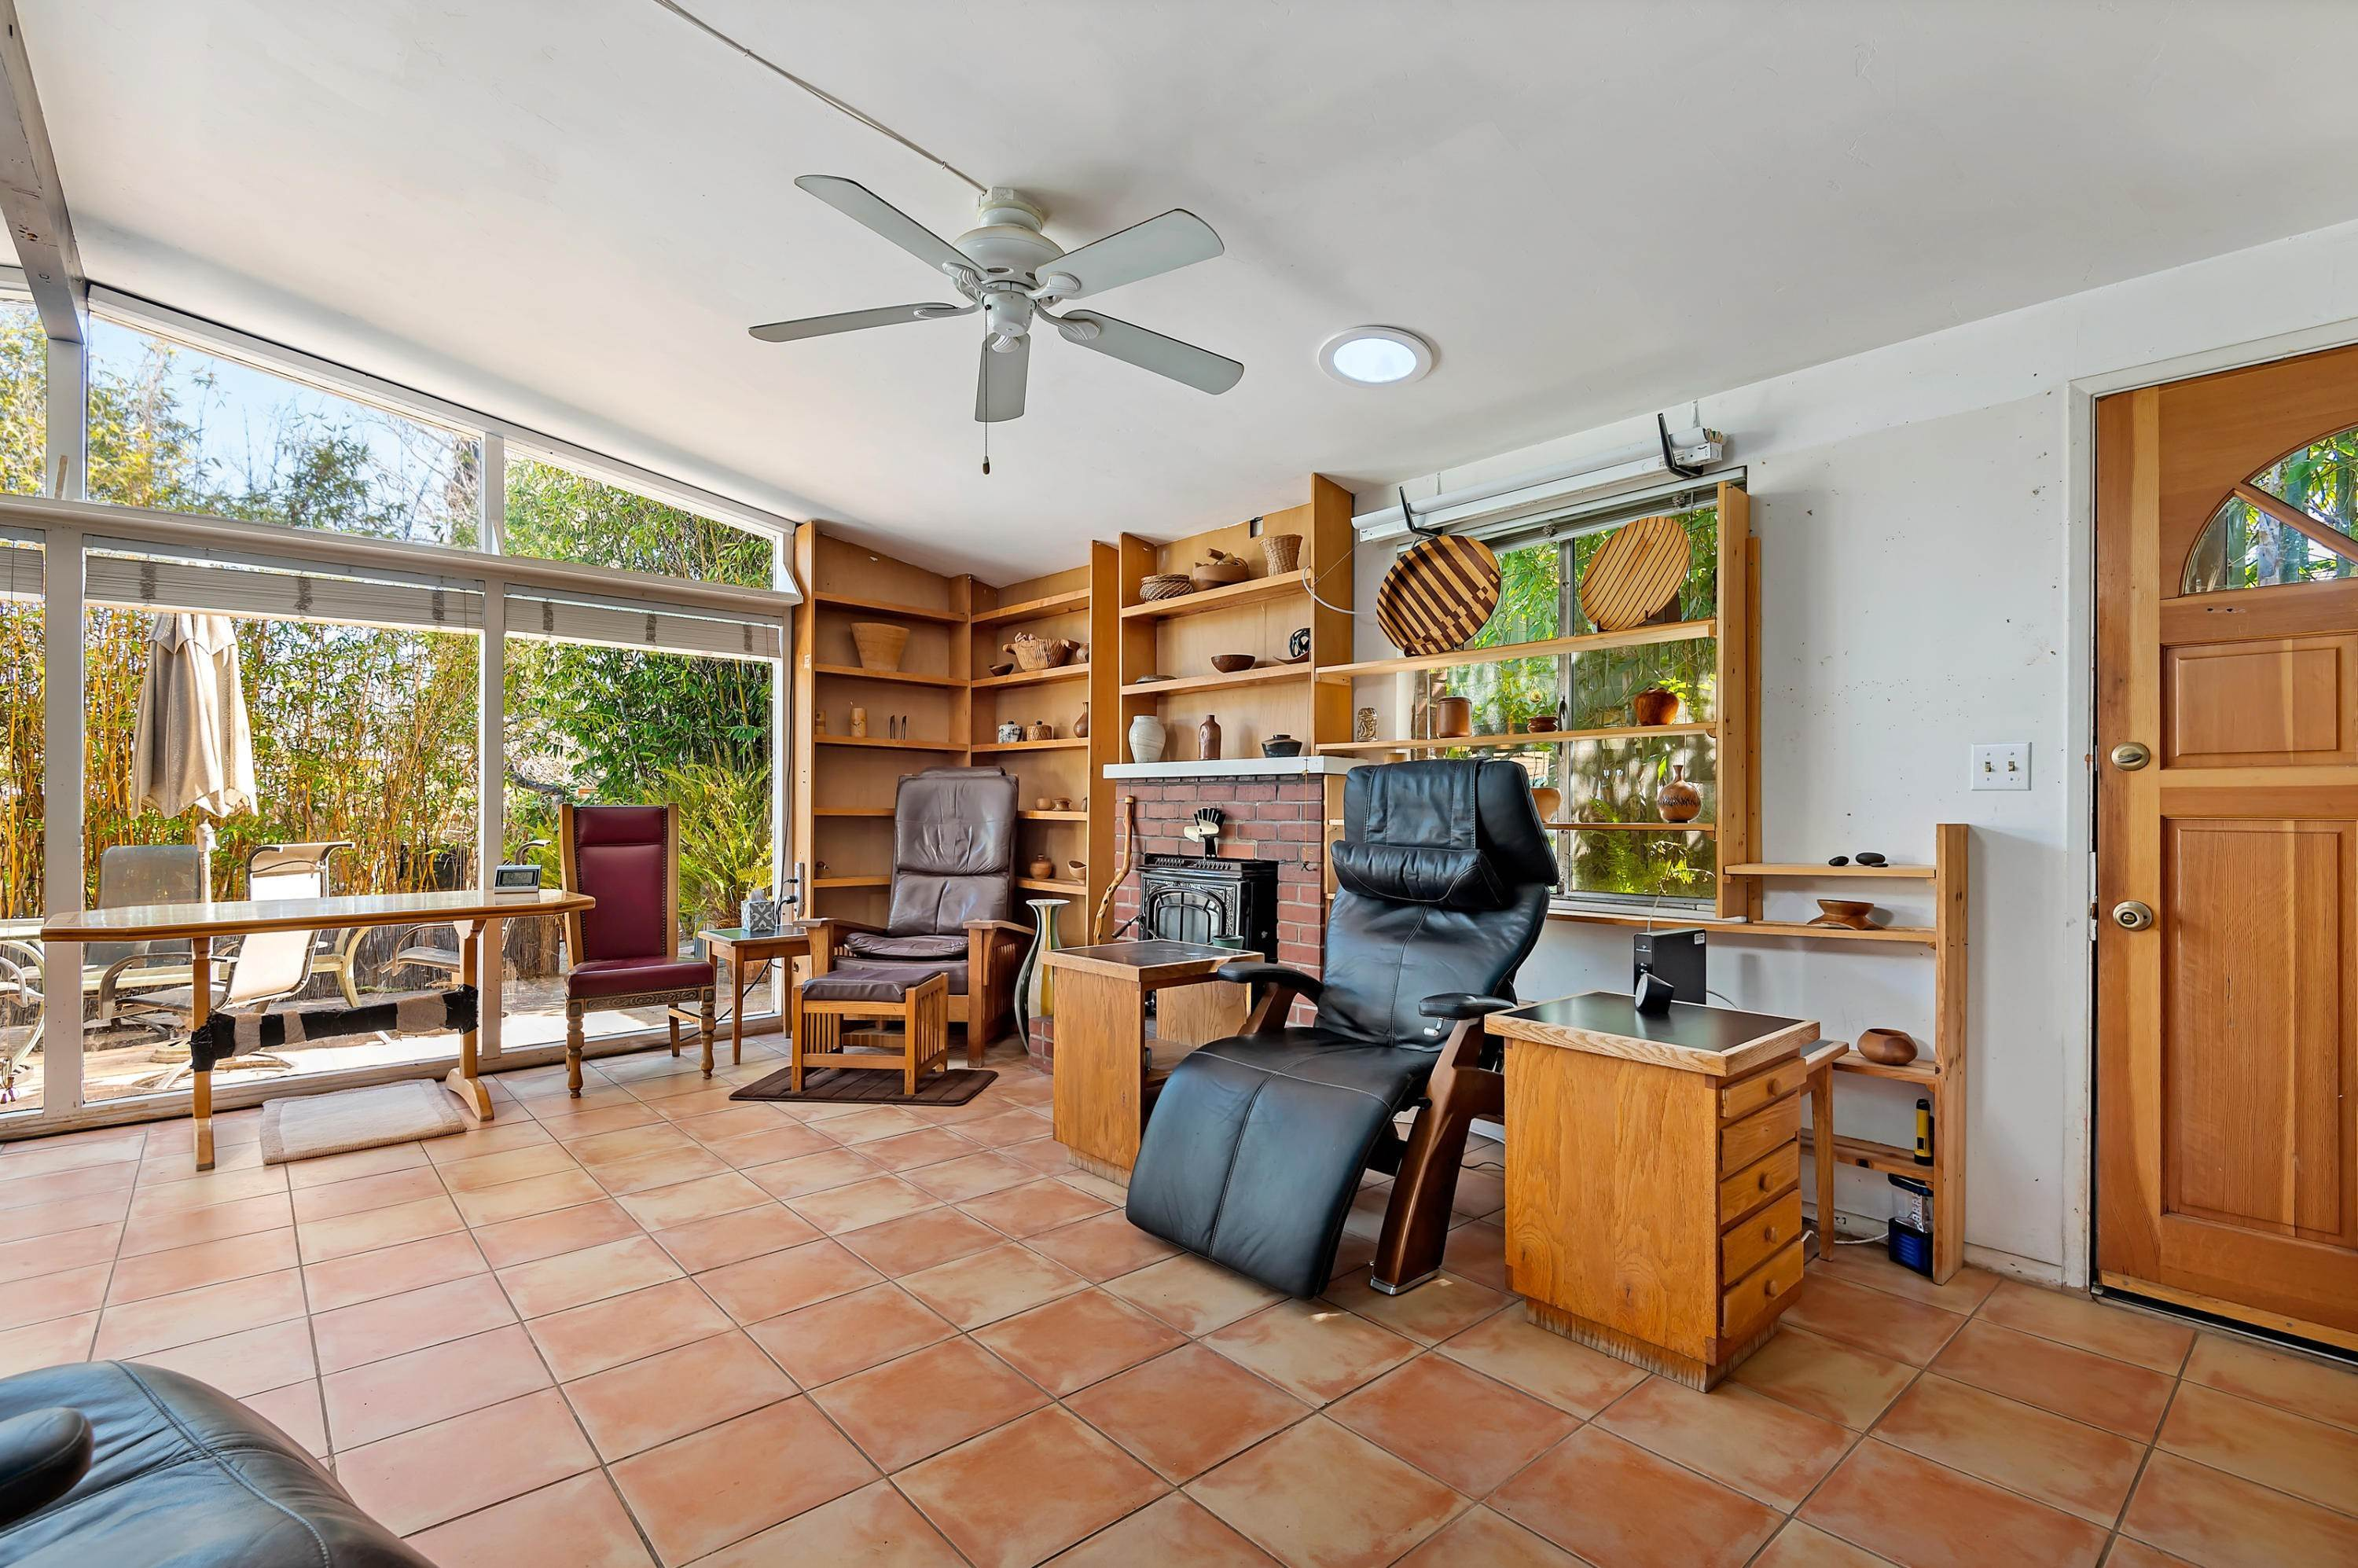 7. Estate for Sale at 1812 Gillespie Street Santa Barbara, California 93101 United States